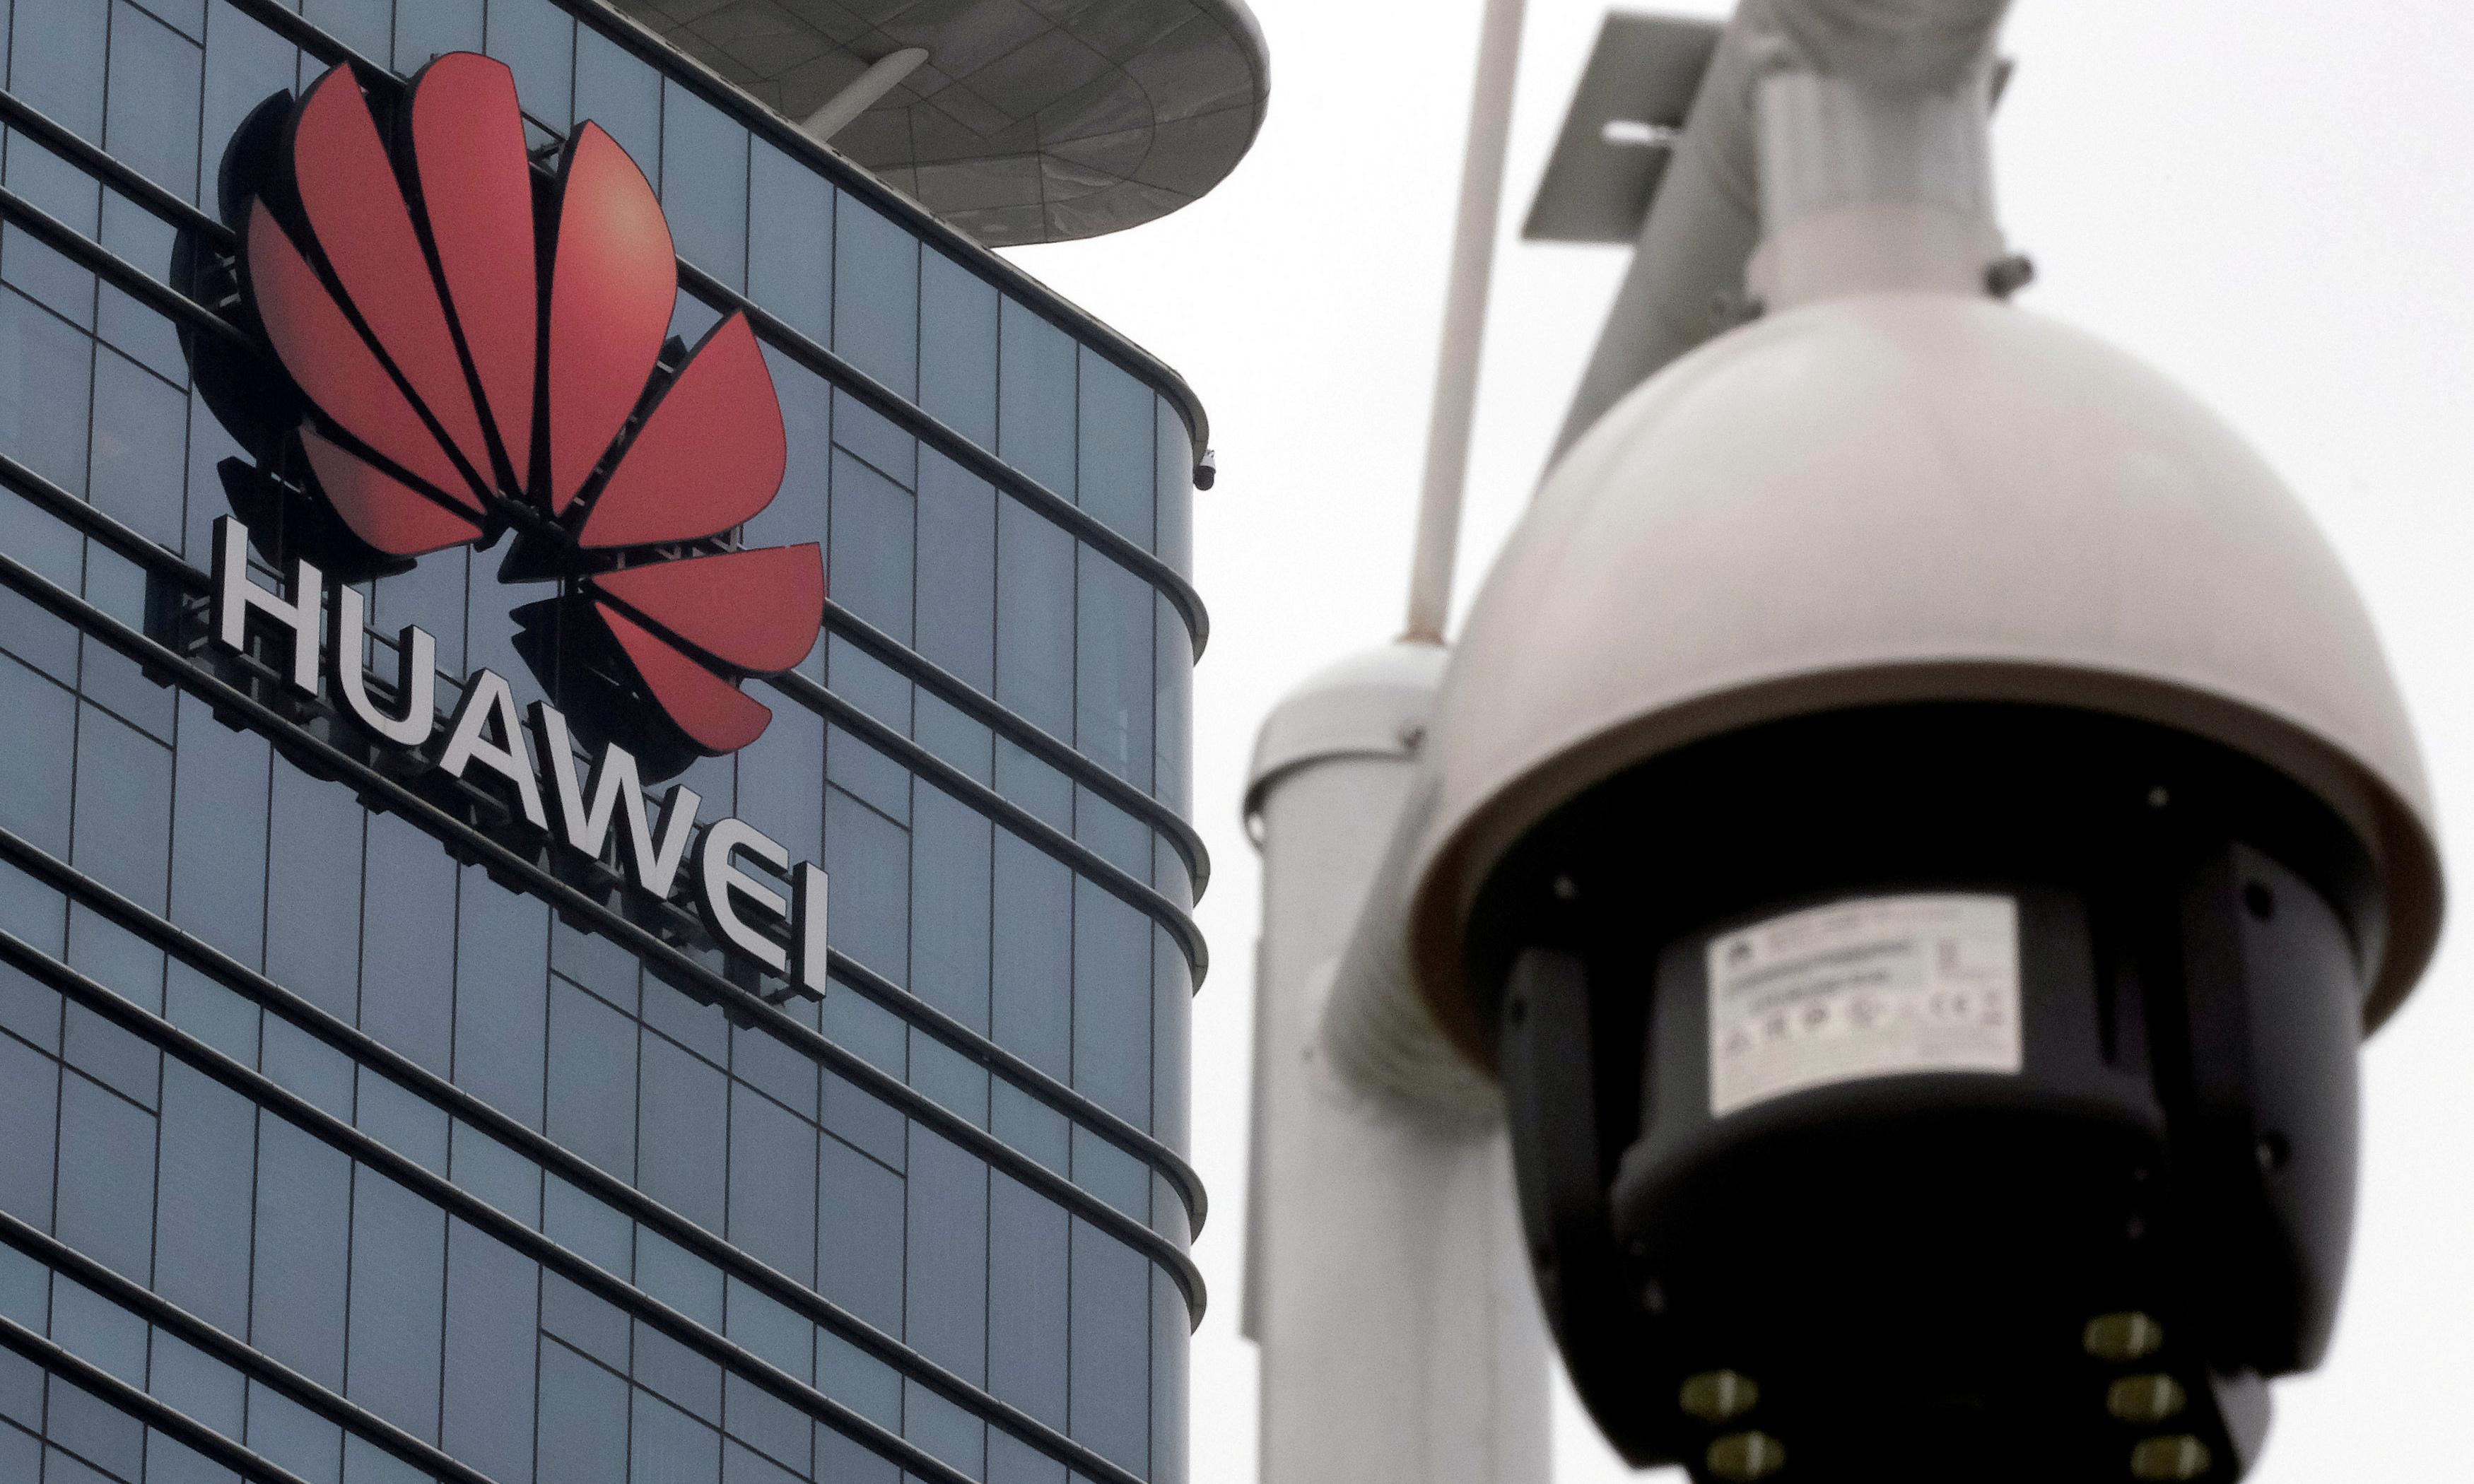 Who really pulls the strings at Huawei?